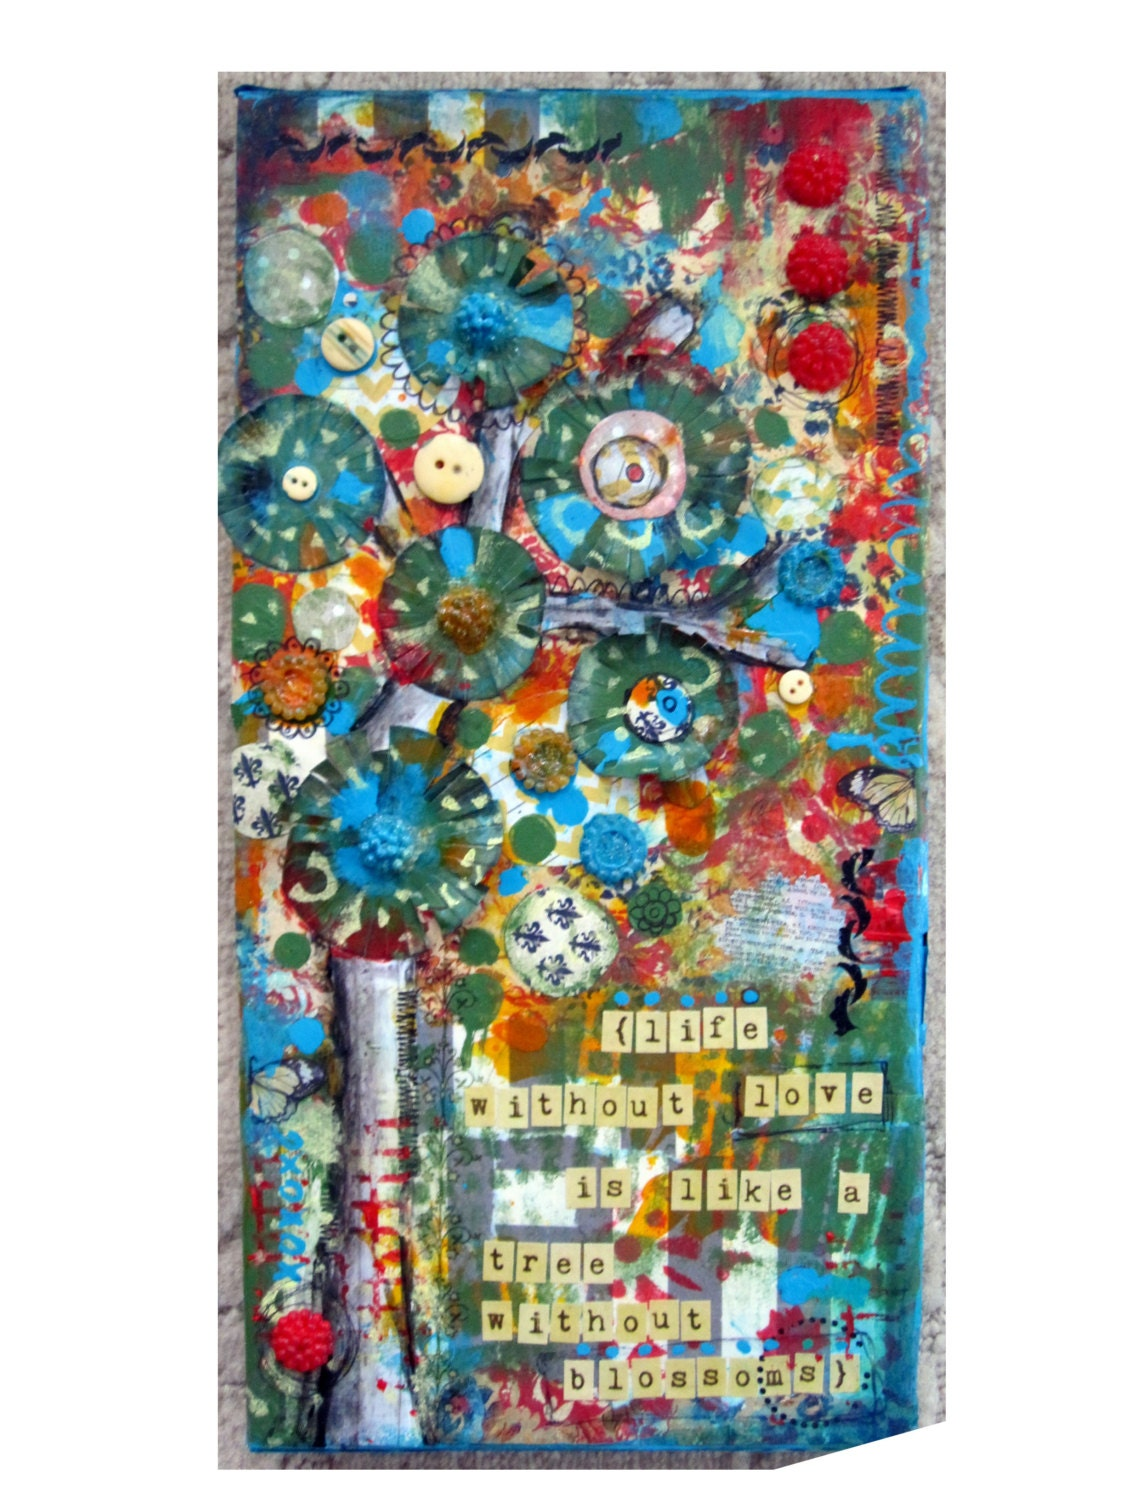 Original Mixed Media Collage Painting Love Is Like Blossoms Tree Artwork Collage Acrylic Textured Art